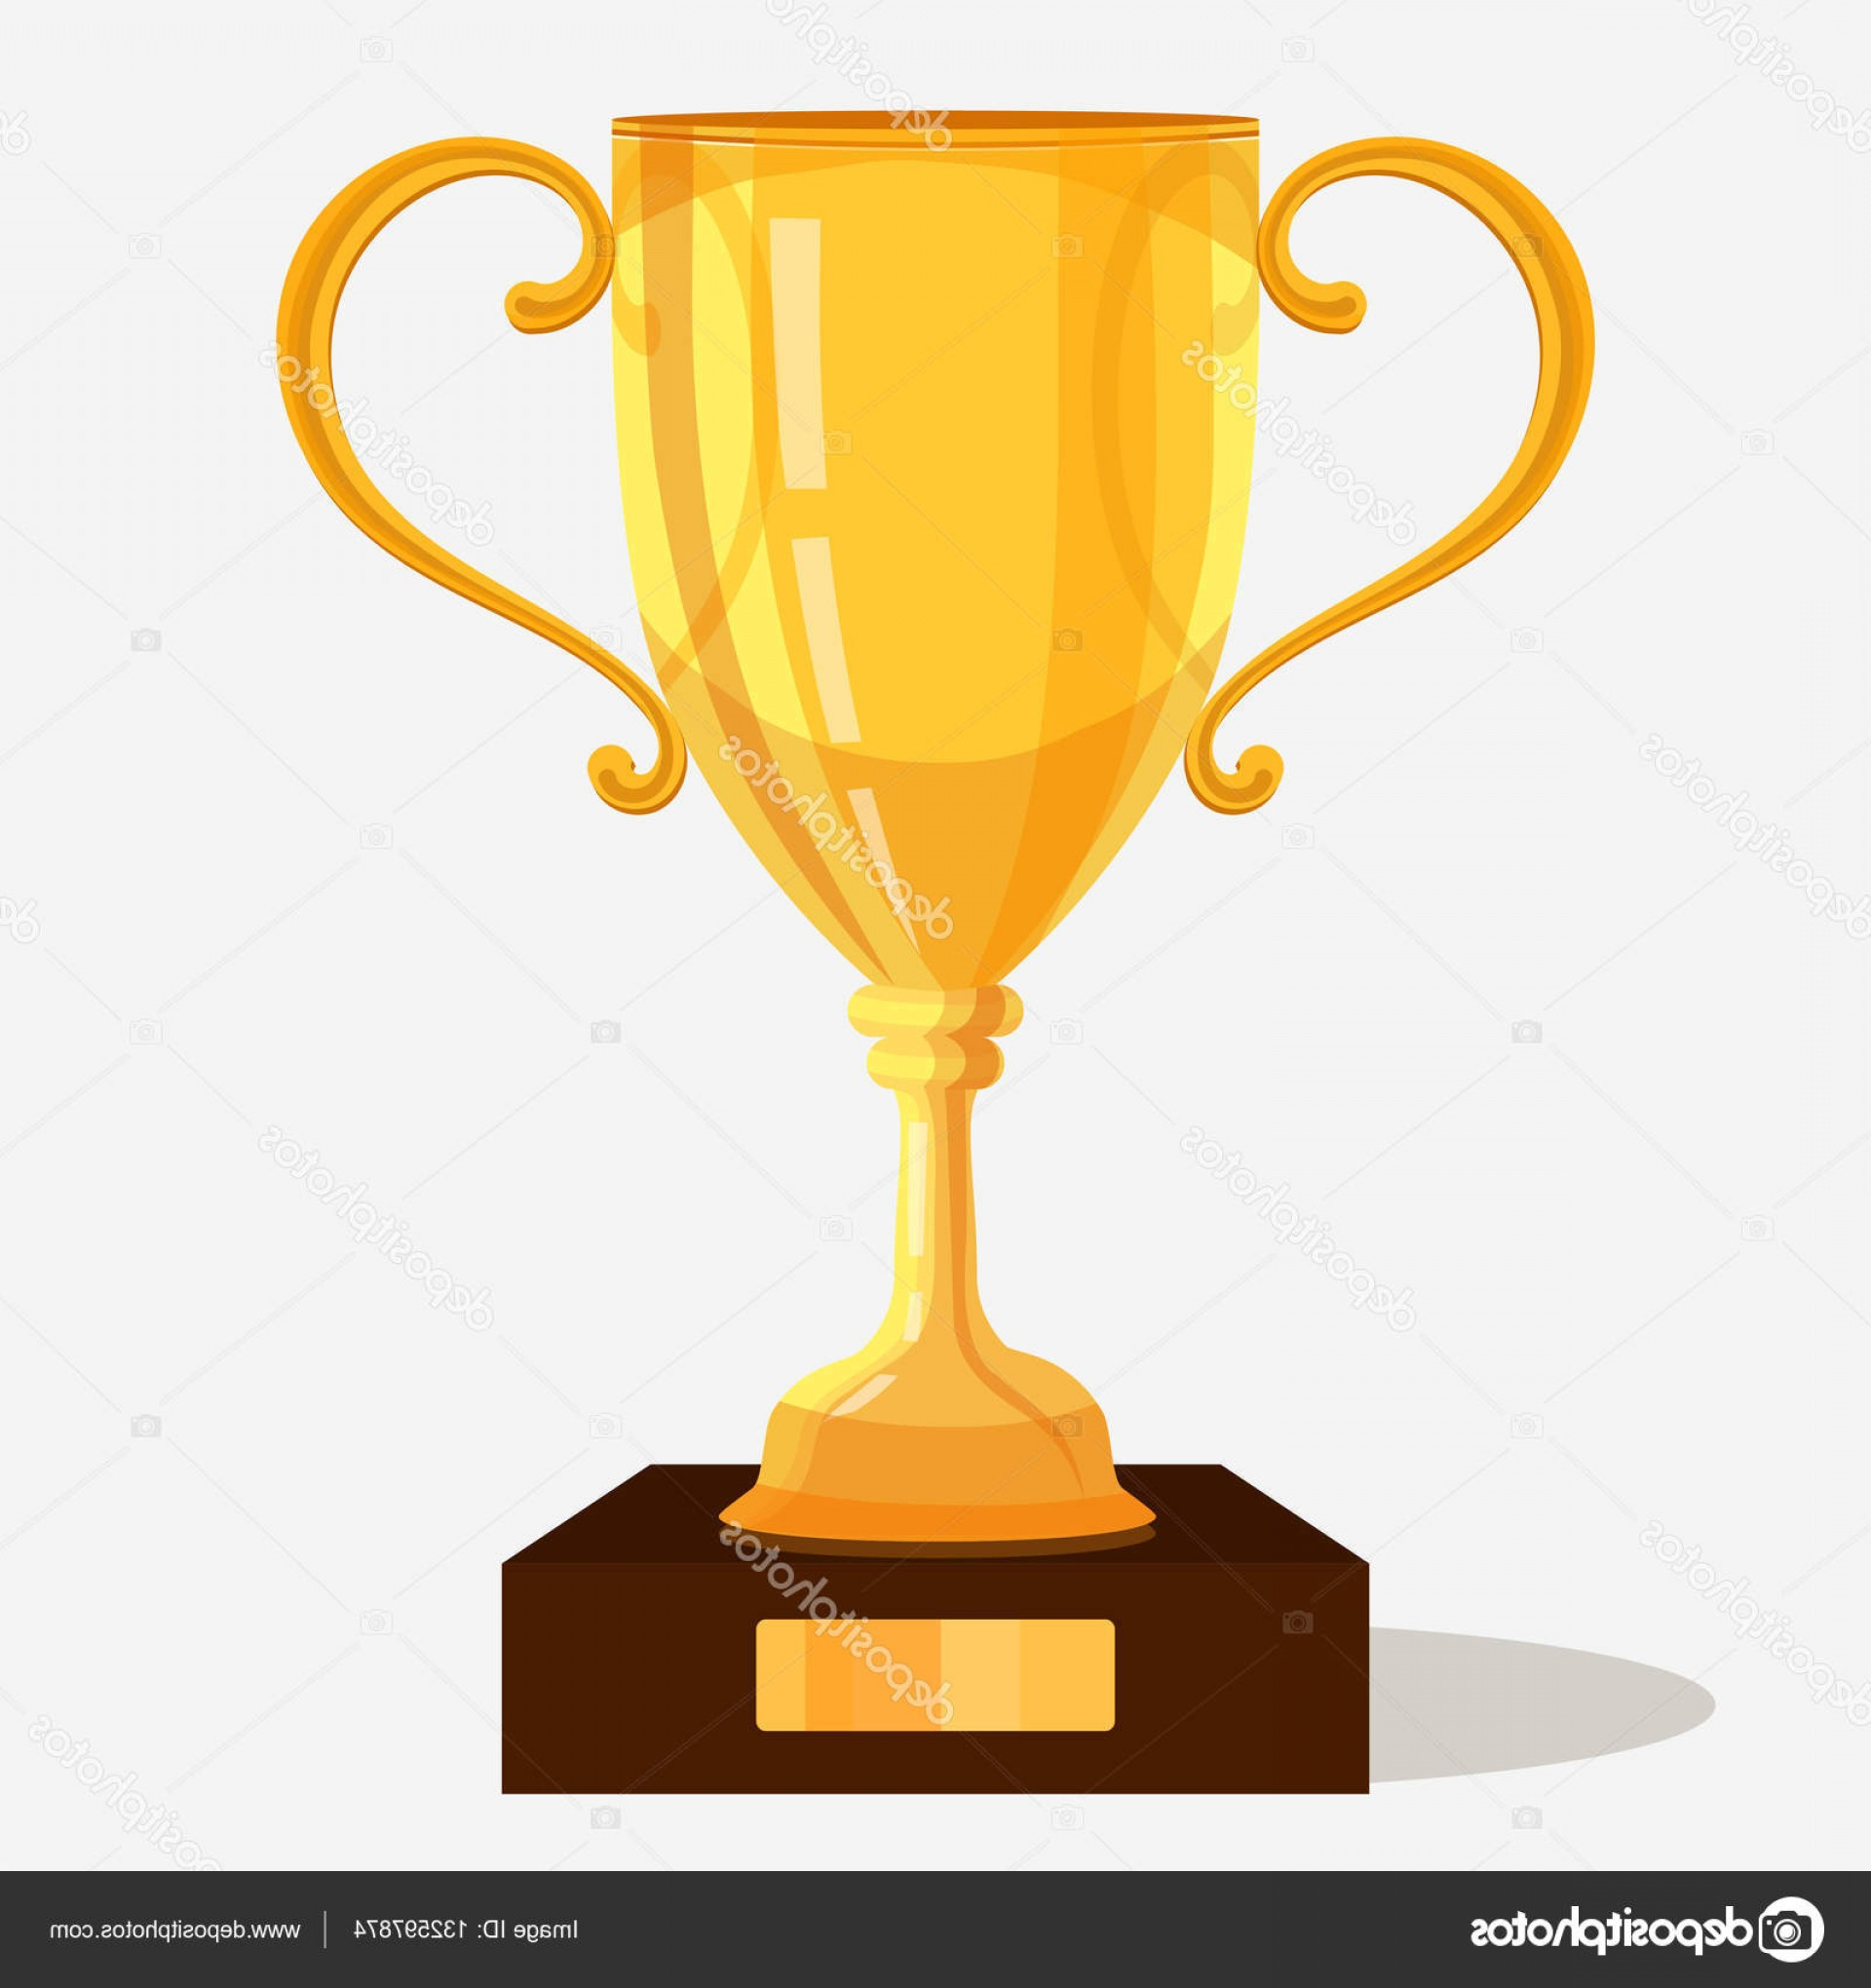 Gold Trophy Vector: Stock Illustration Gold Trophy Cup Vector